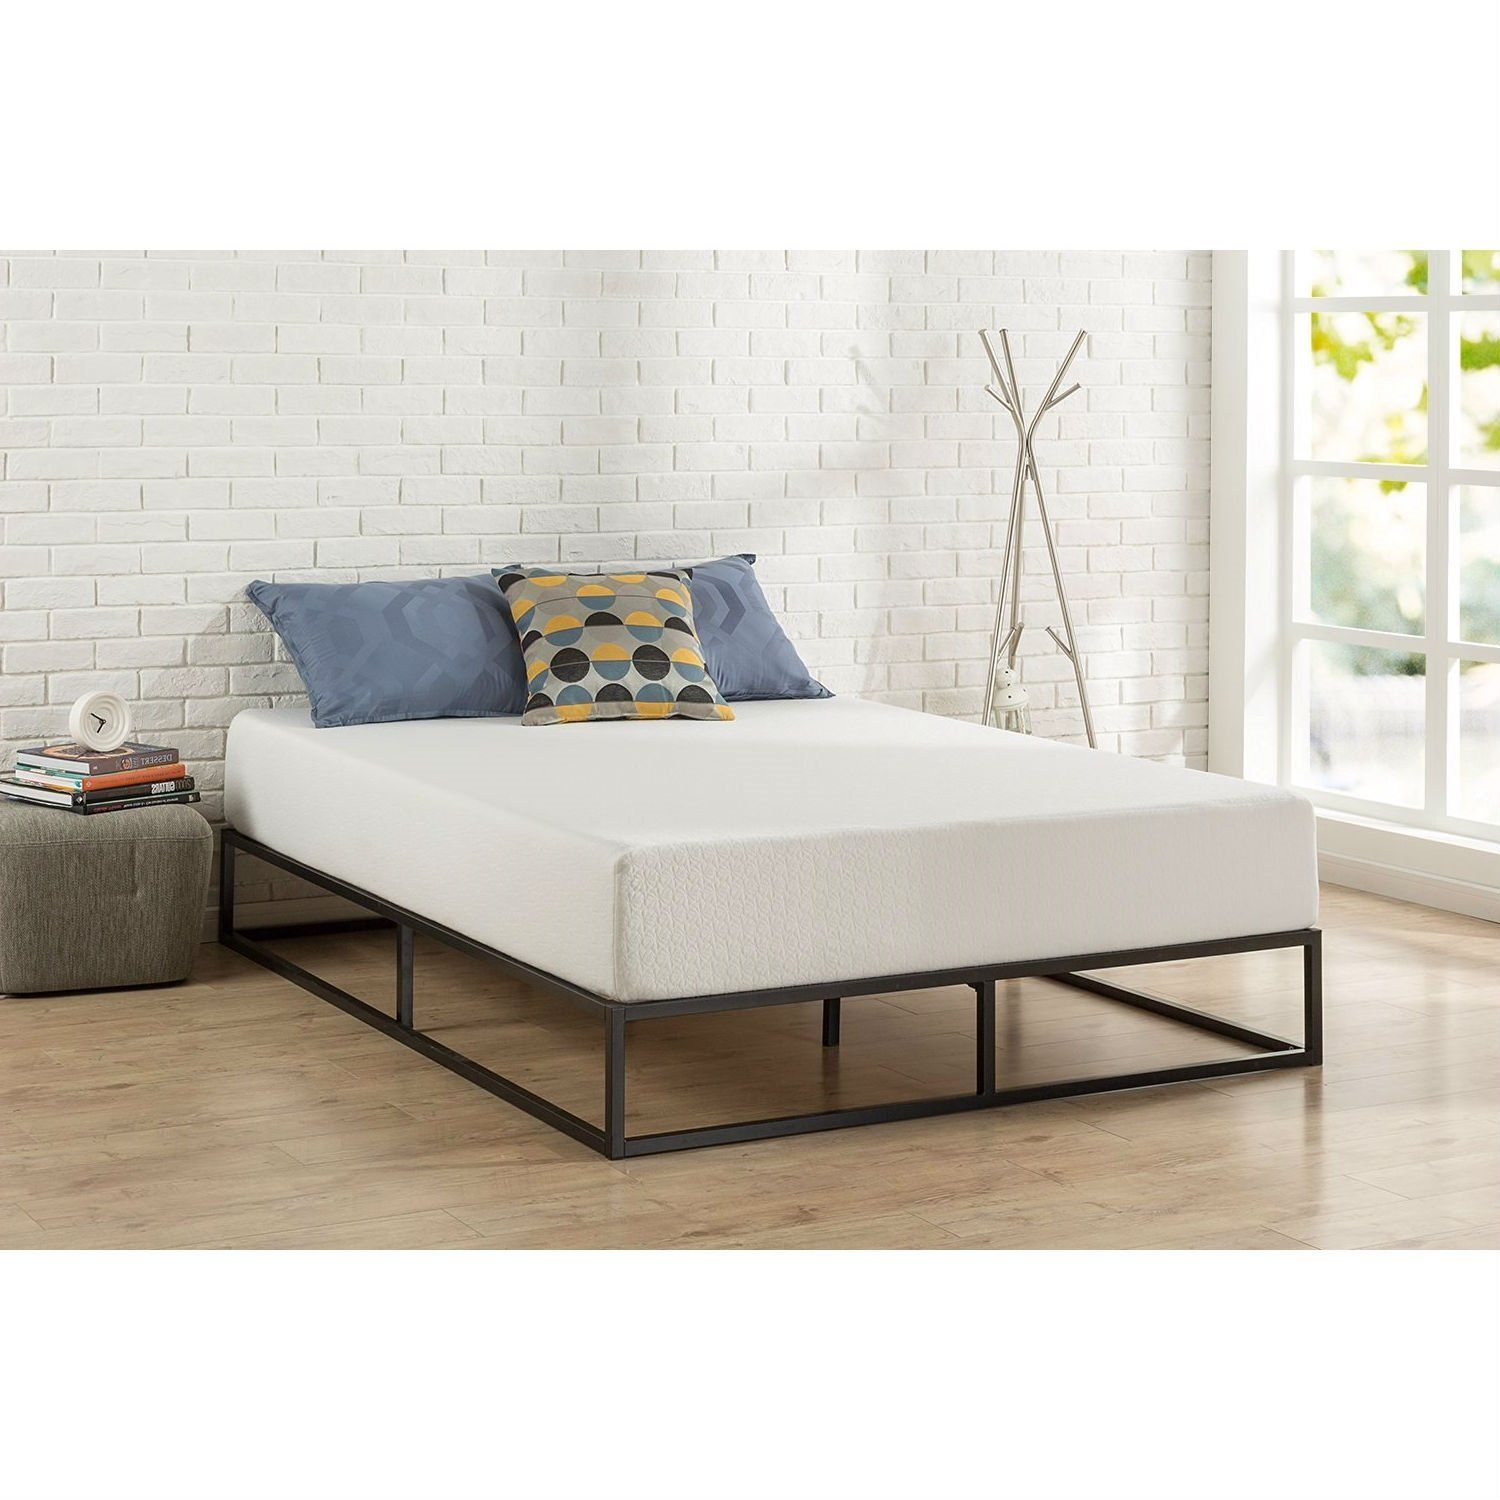 Twin Size 10 Inch Low Profile Modern Metal Platform Bed Frame With Wooden Slats Full Bed Frame Metal Platform Bed Platform Bed Frame